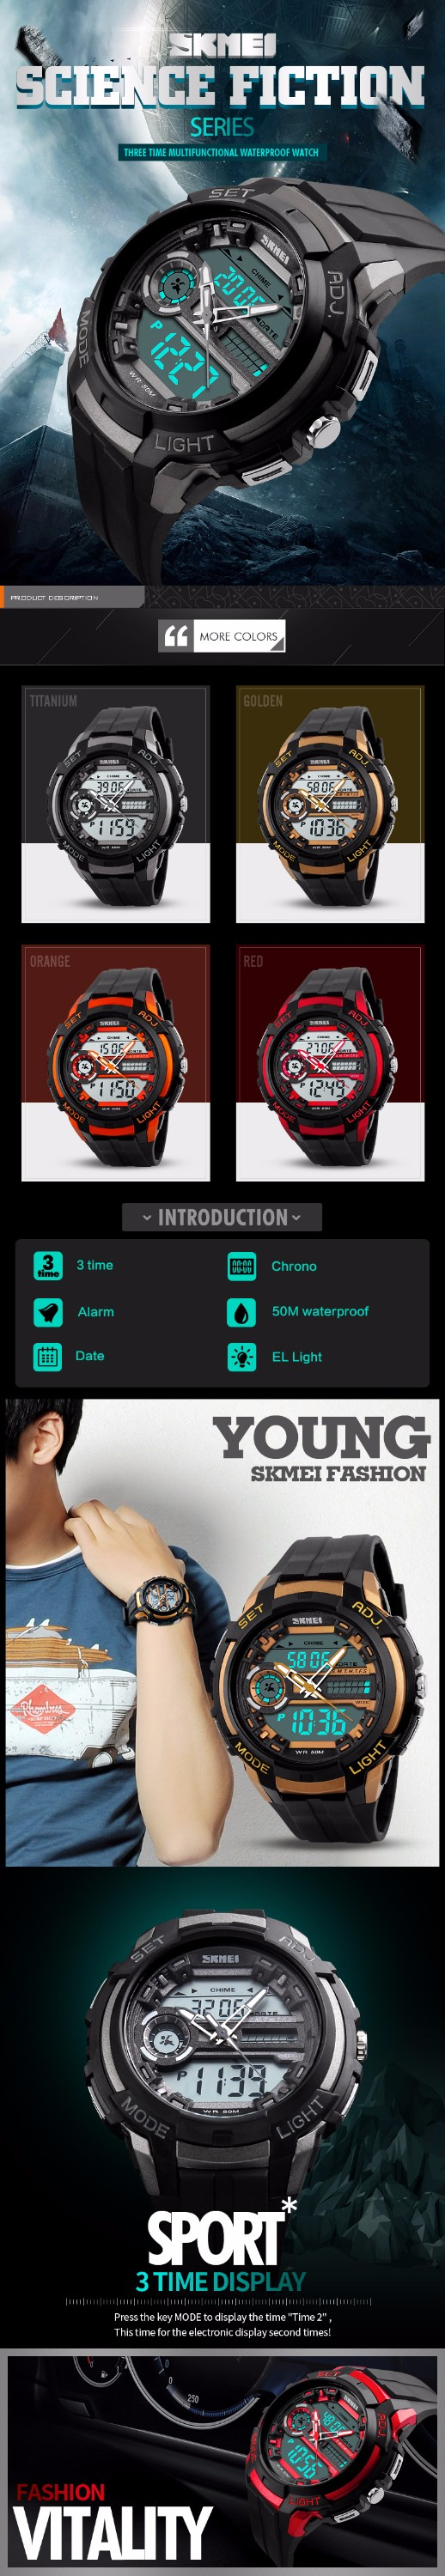 SKMEI 1202 Luxury Brand Men Sports Watch Dual Display Analog LED Digital Quartz Watch Fashion Student Swimming Diver Watch